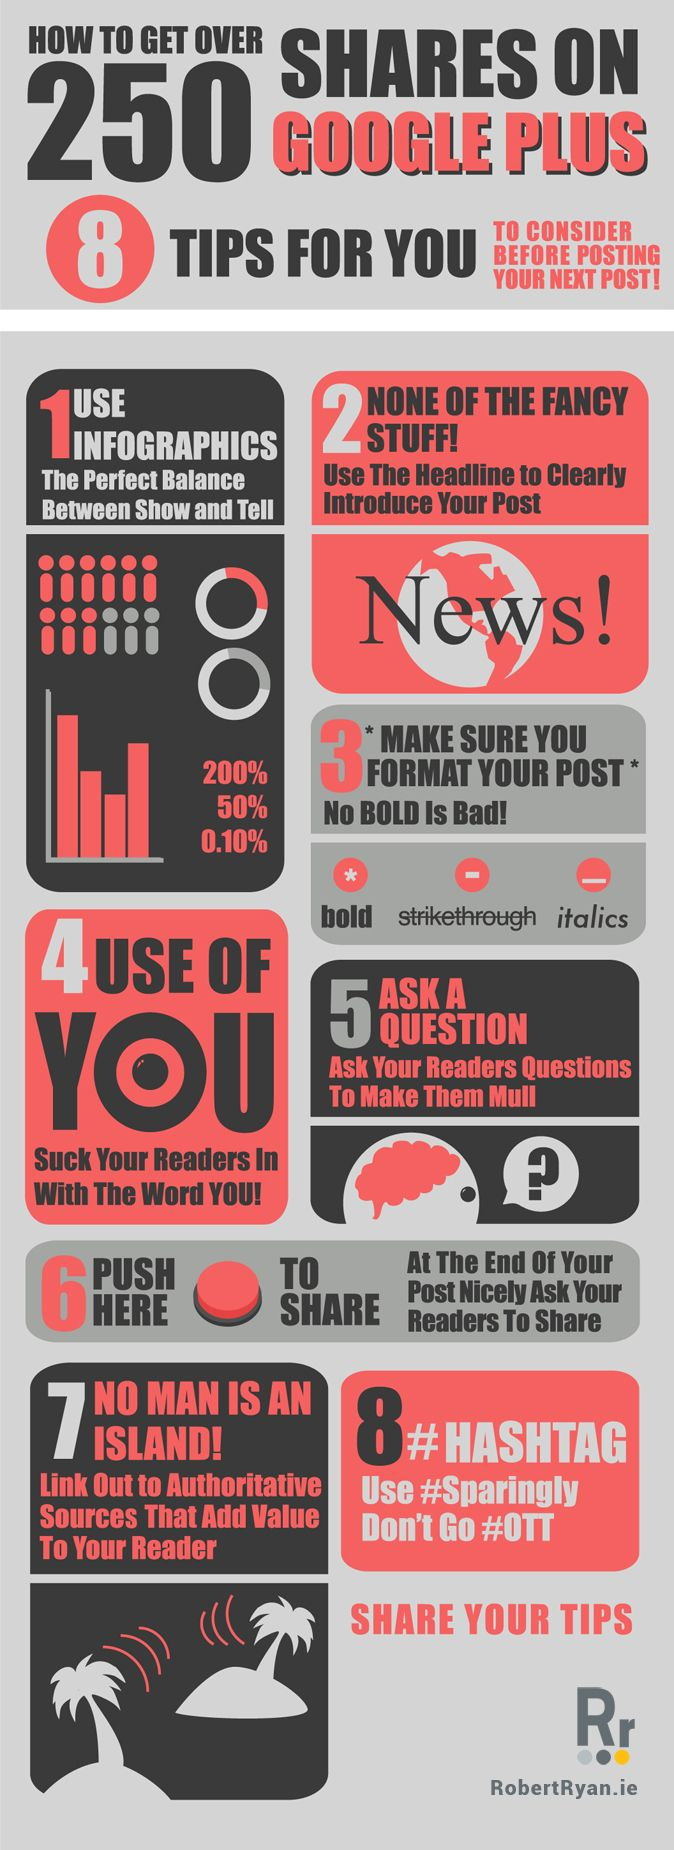 How To Get Over 250 Shares On Google Plus - 8 Tips For You To Consider Before Posting Your Next Post! #infographic